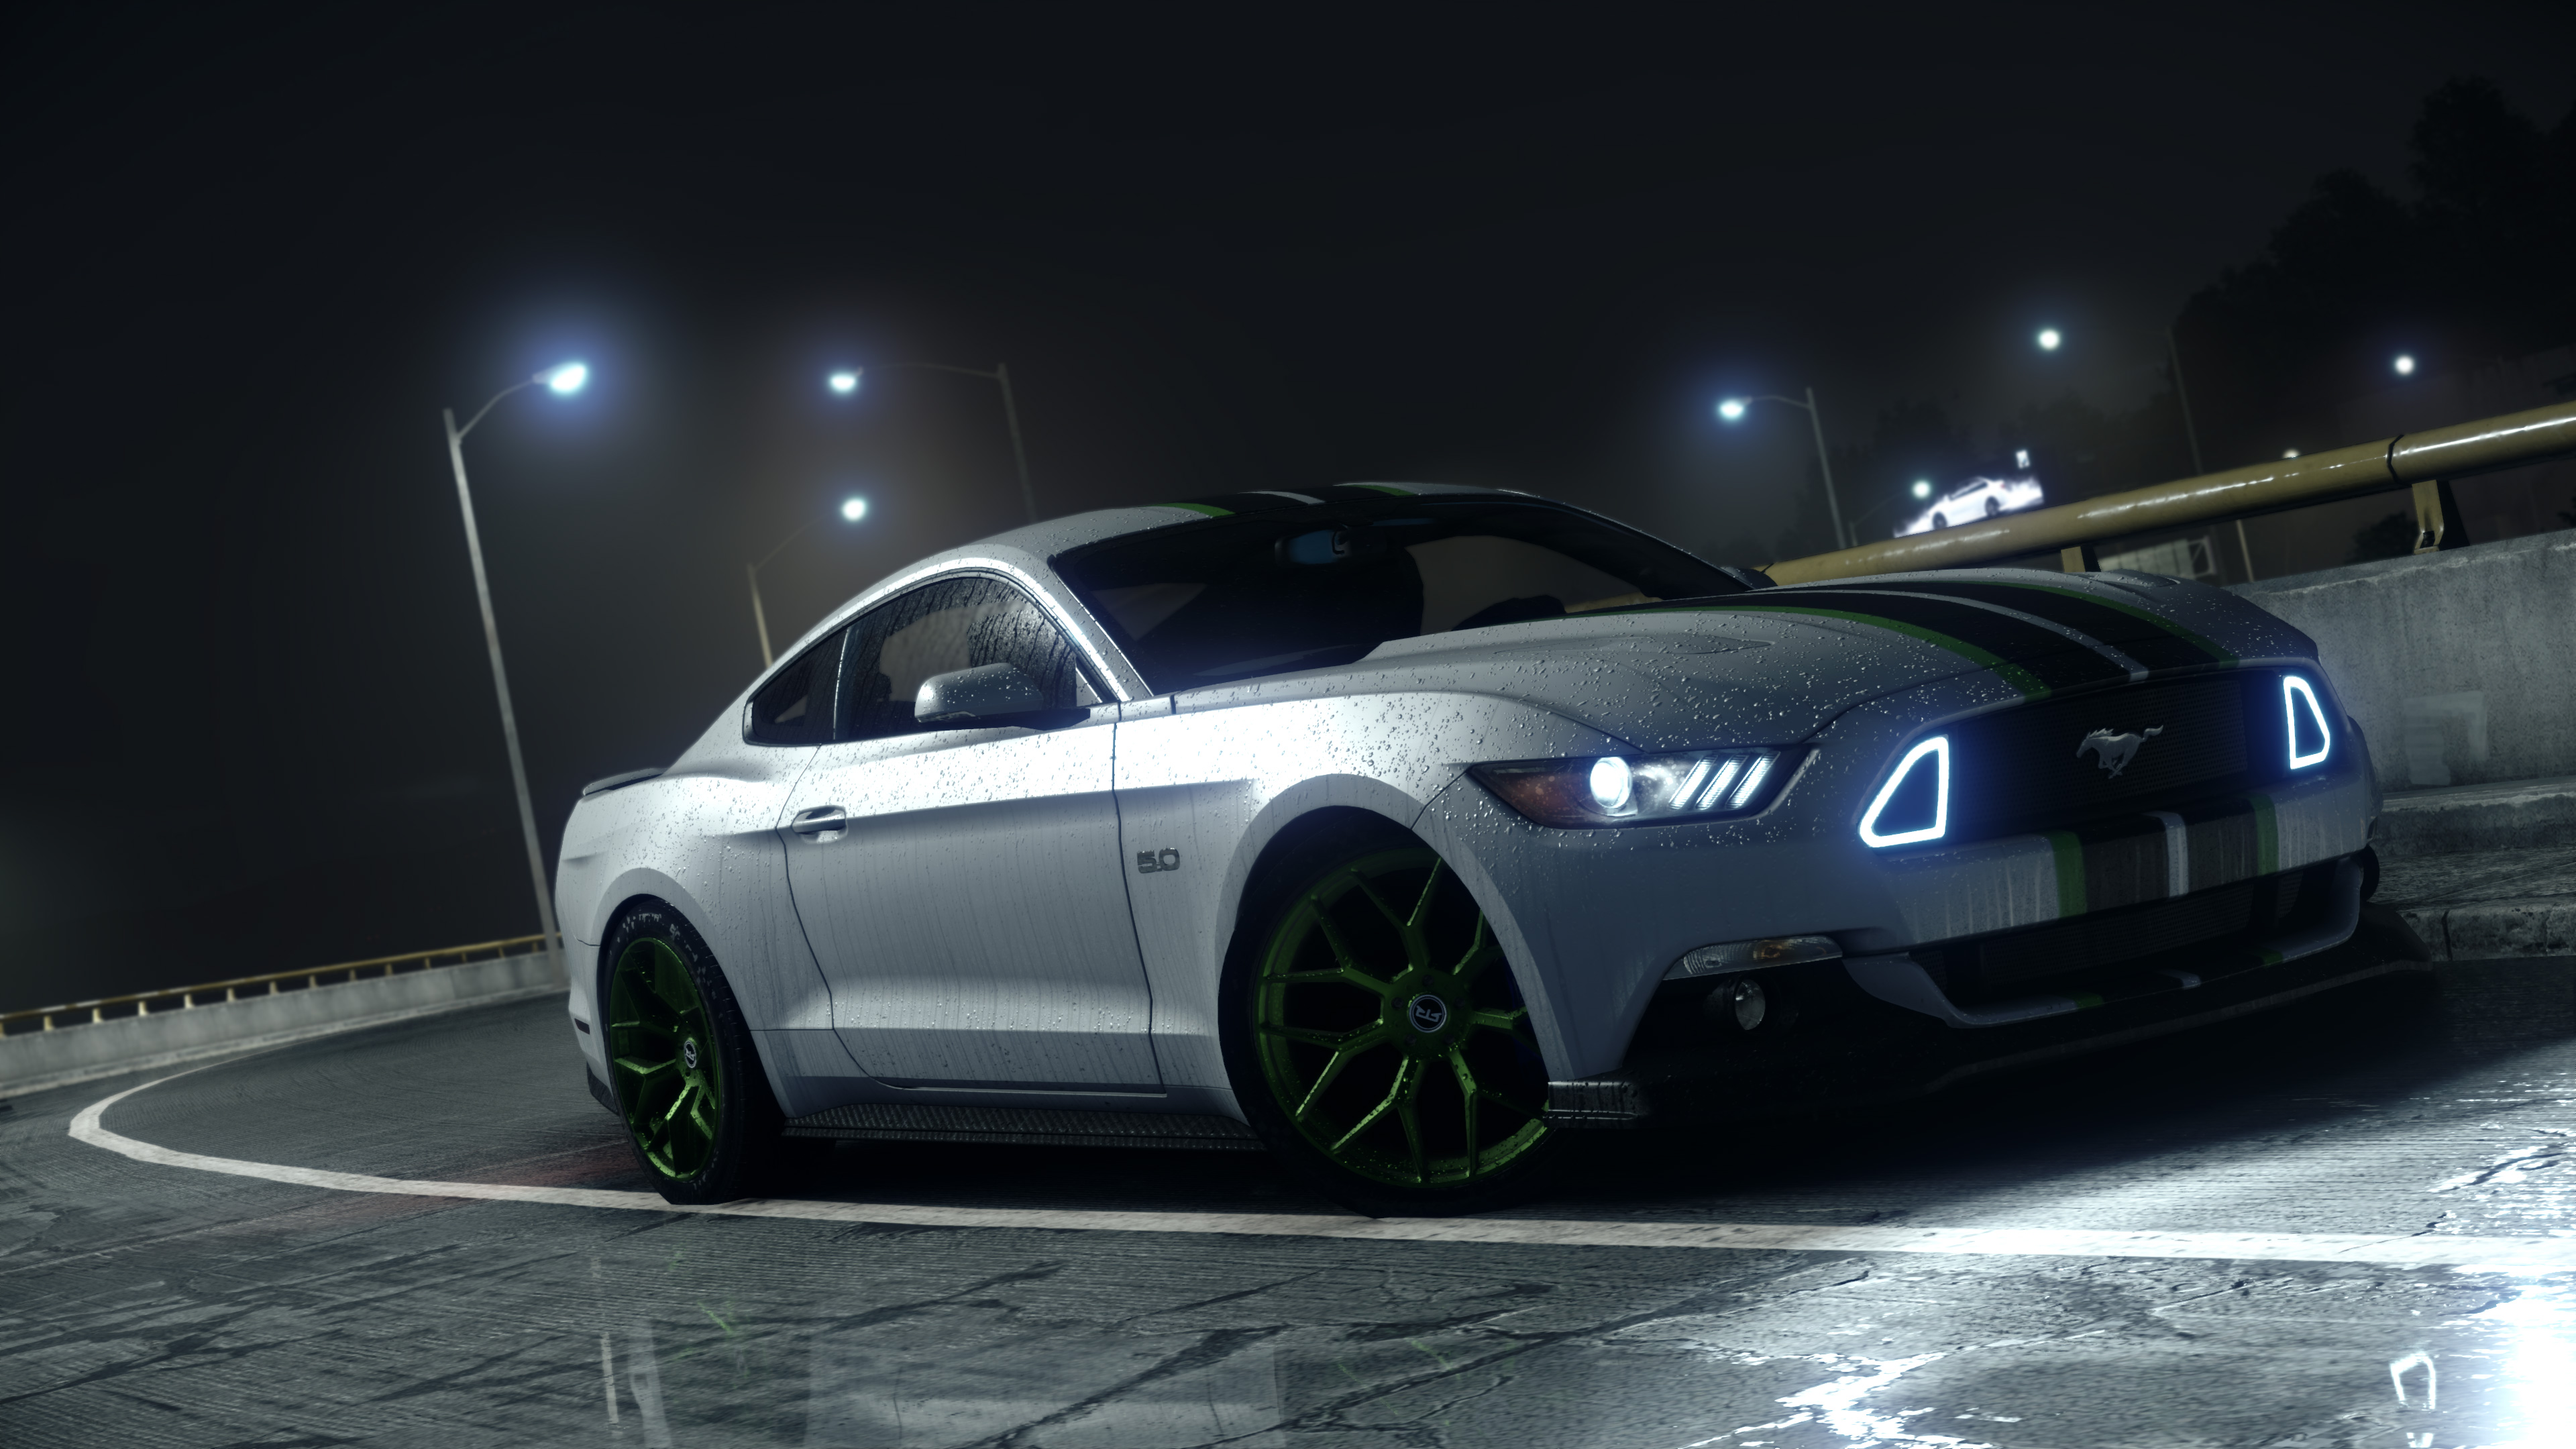 ford mustang gtr 1537691766 - Ford Mustang GTR - need for speed wallpapers, need for speed payback wallpapers, hd-wallpapers, games wallpapers, ford mustang wallpapers, flickr wallpapers, artist wallpapers, 4k-wallpapers, 2017 games wallpapers